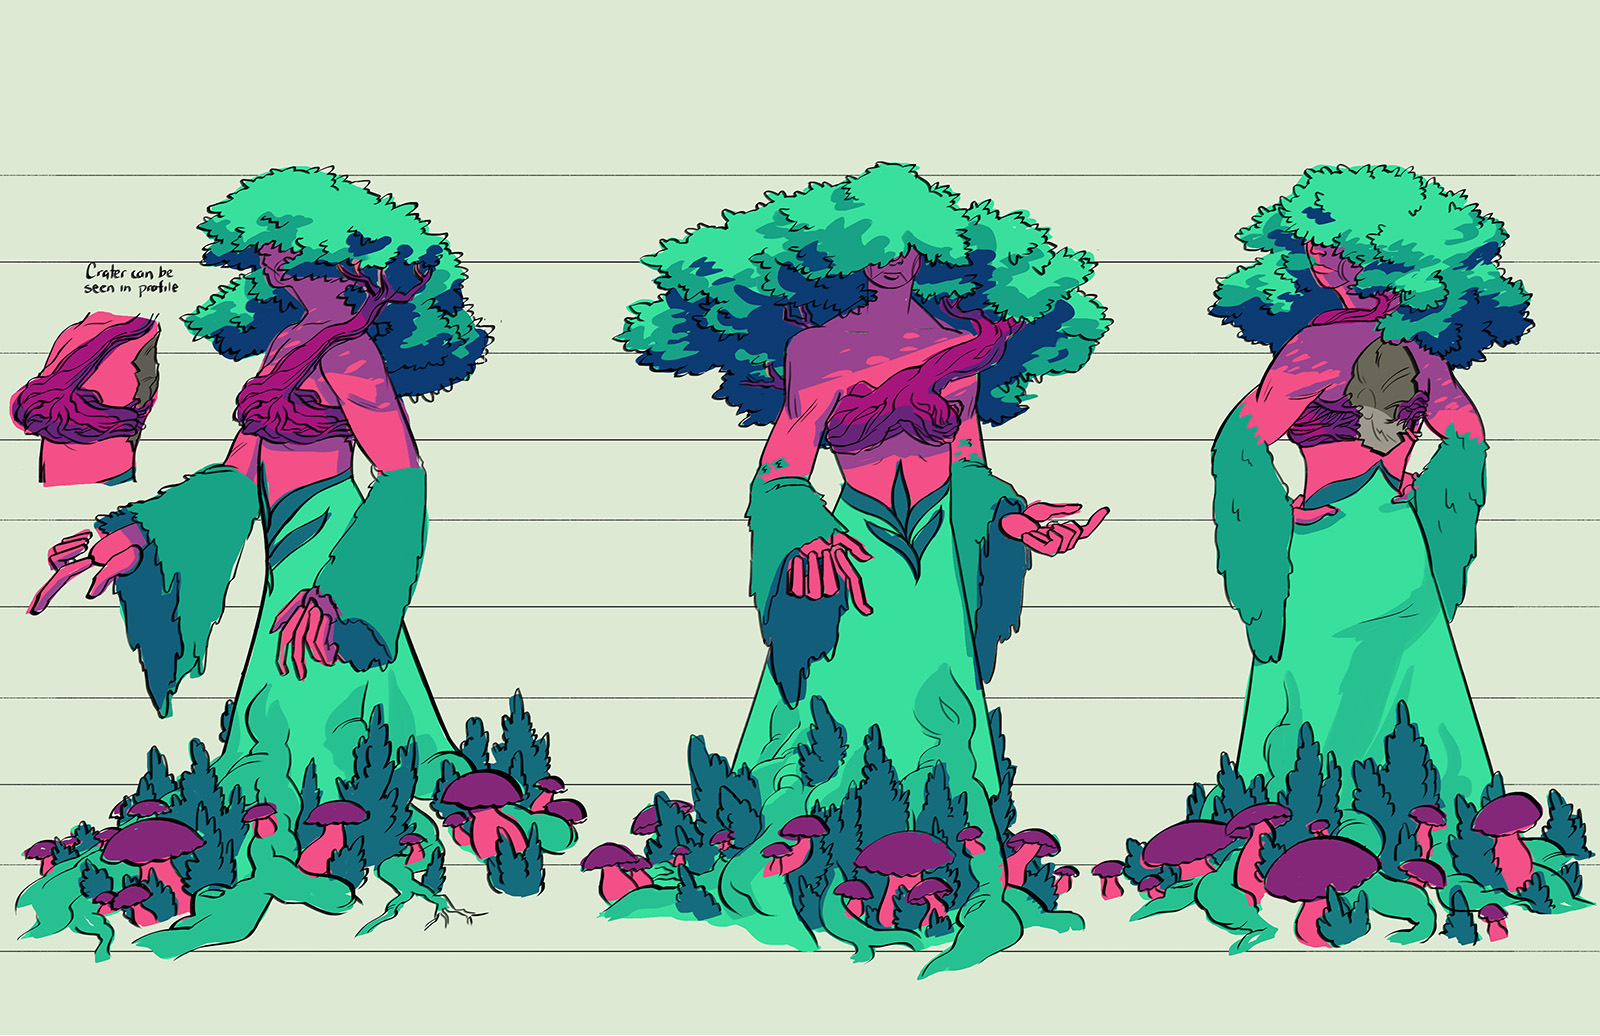 Ireshta character design. They are the natural embodiment of their planet. A tree grows from their torso and small shrubs and fungus grow near the hem of their clothing.